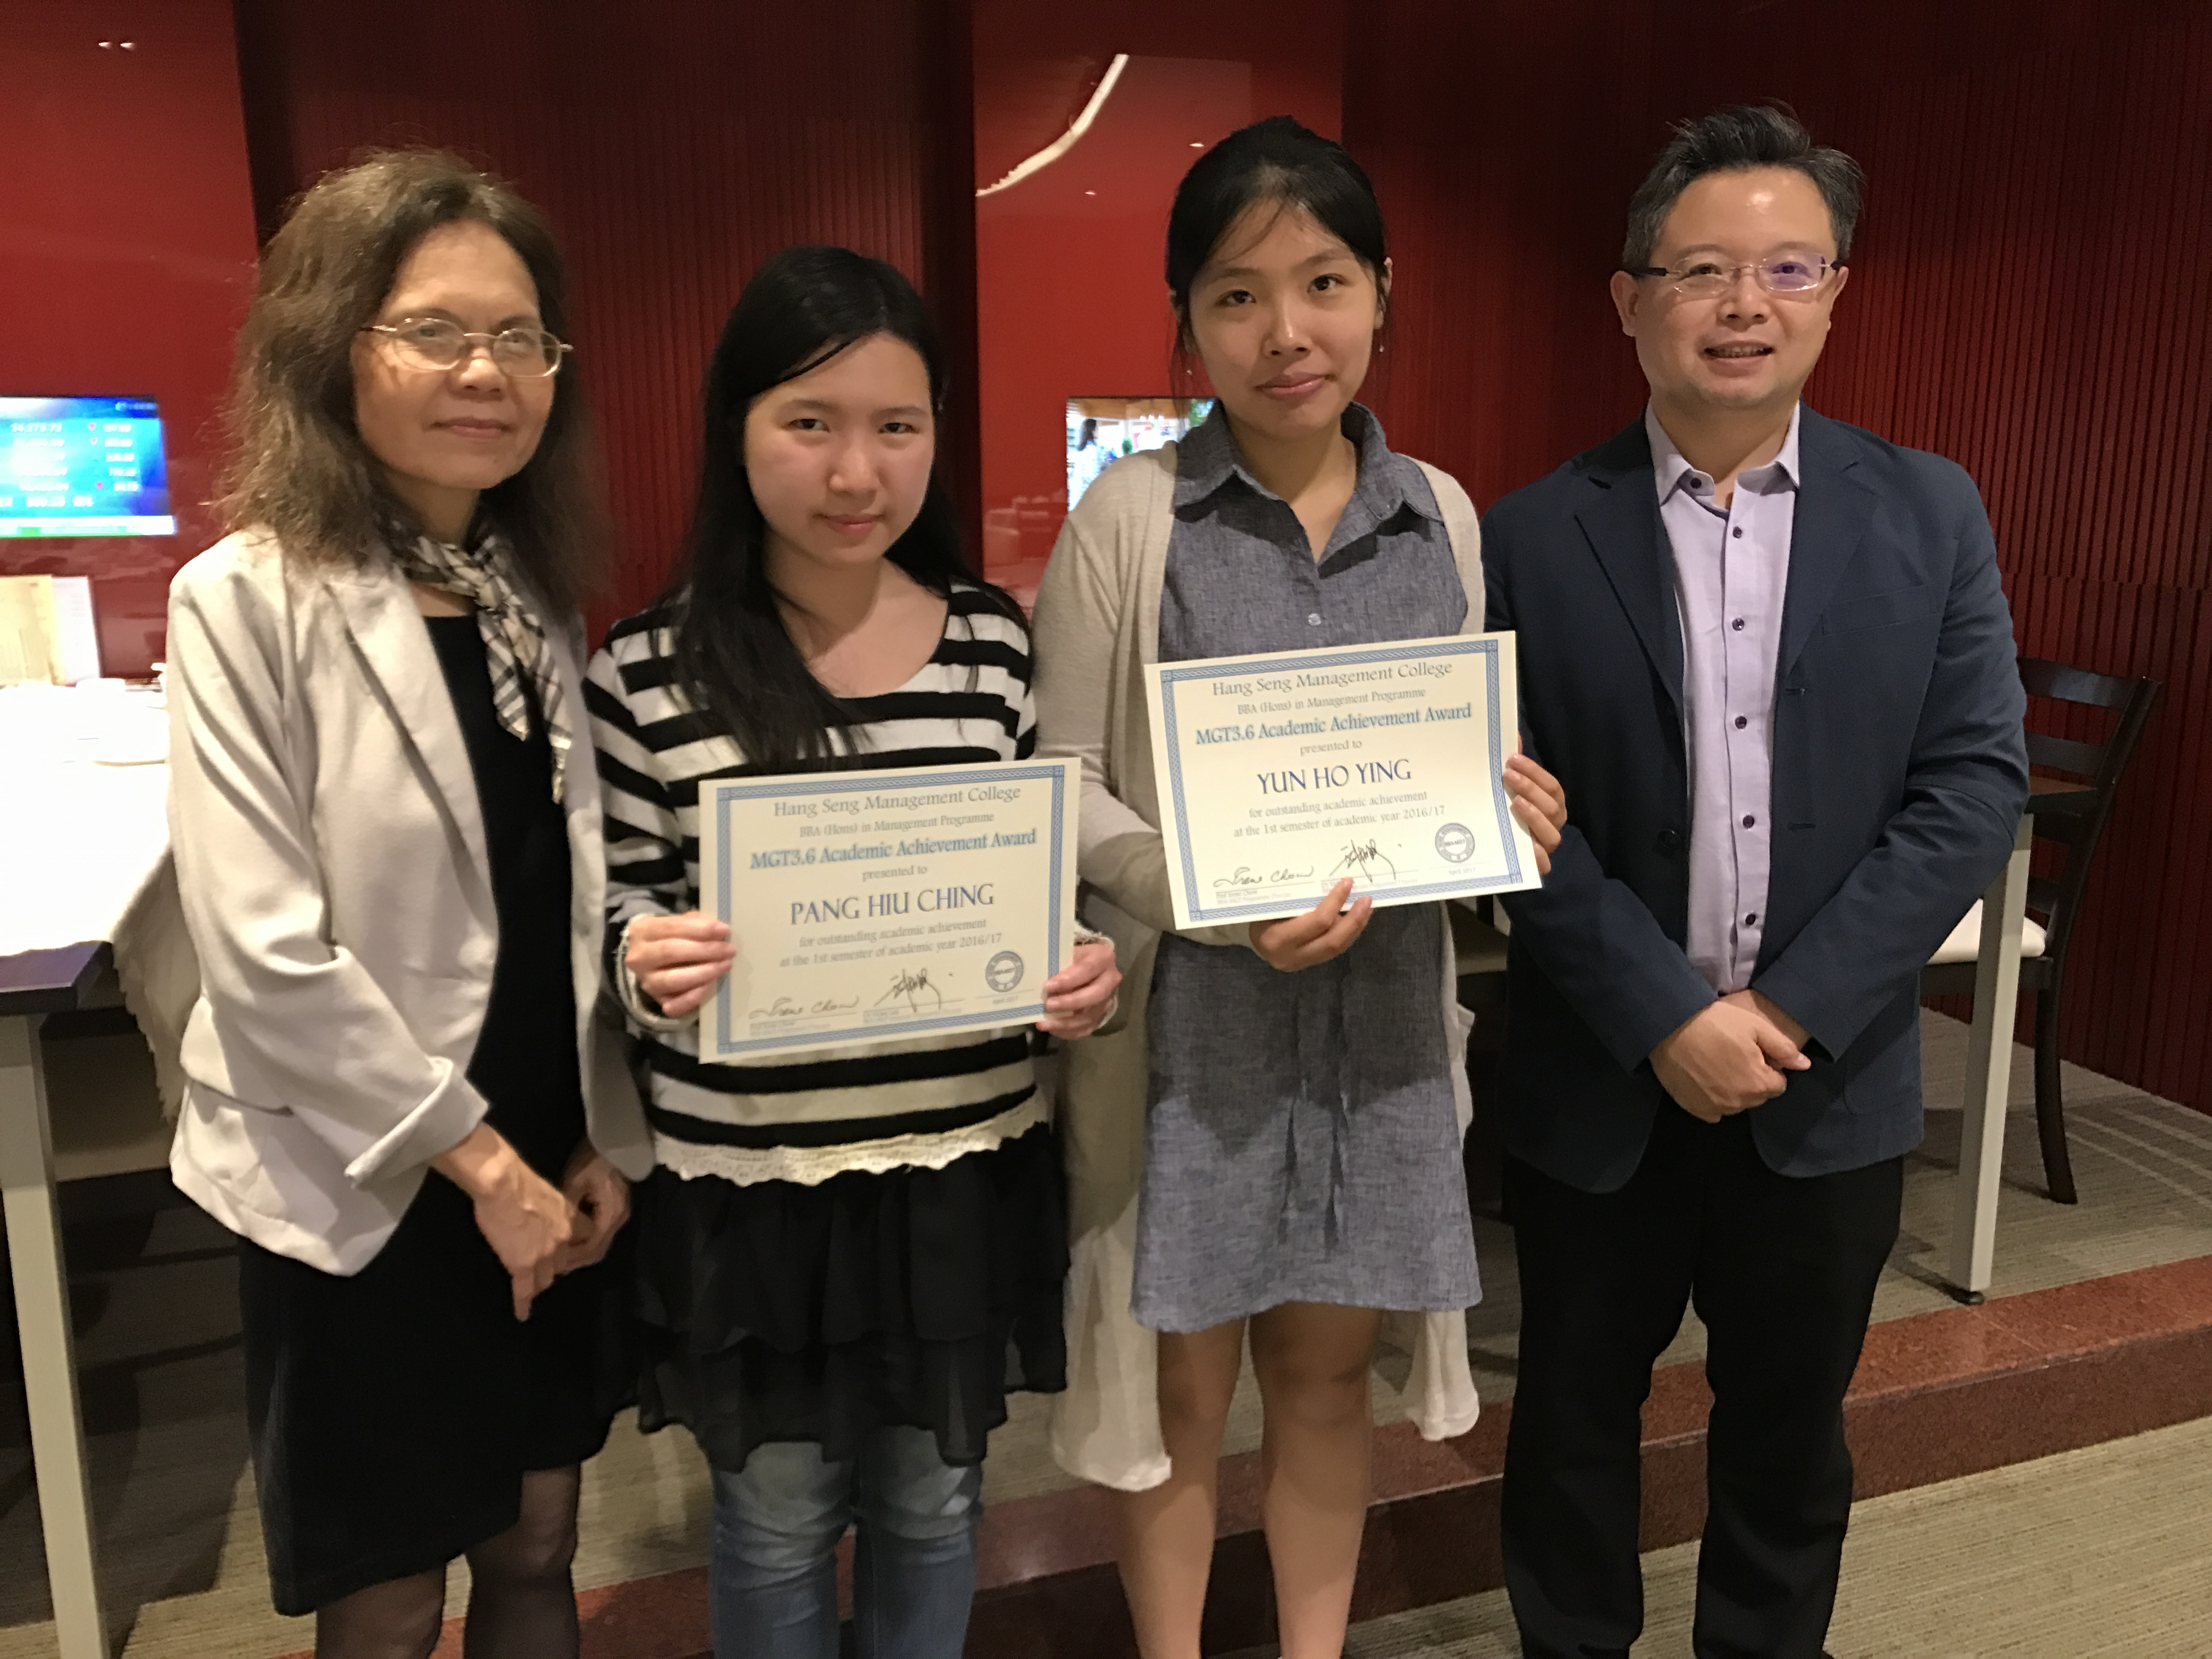 Prof Chow and Dr Man celebrated with the awardees on their outstanding academic performance.